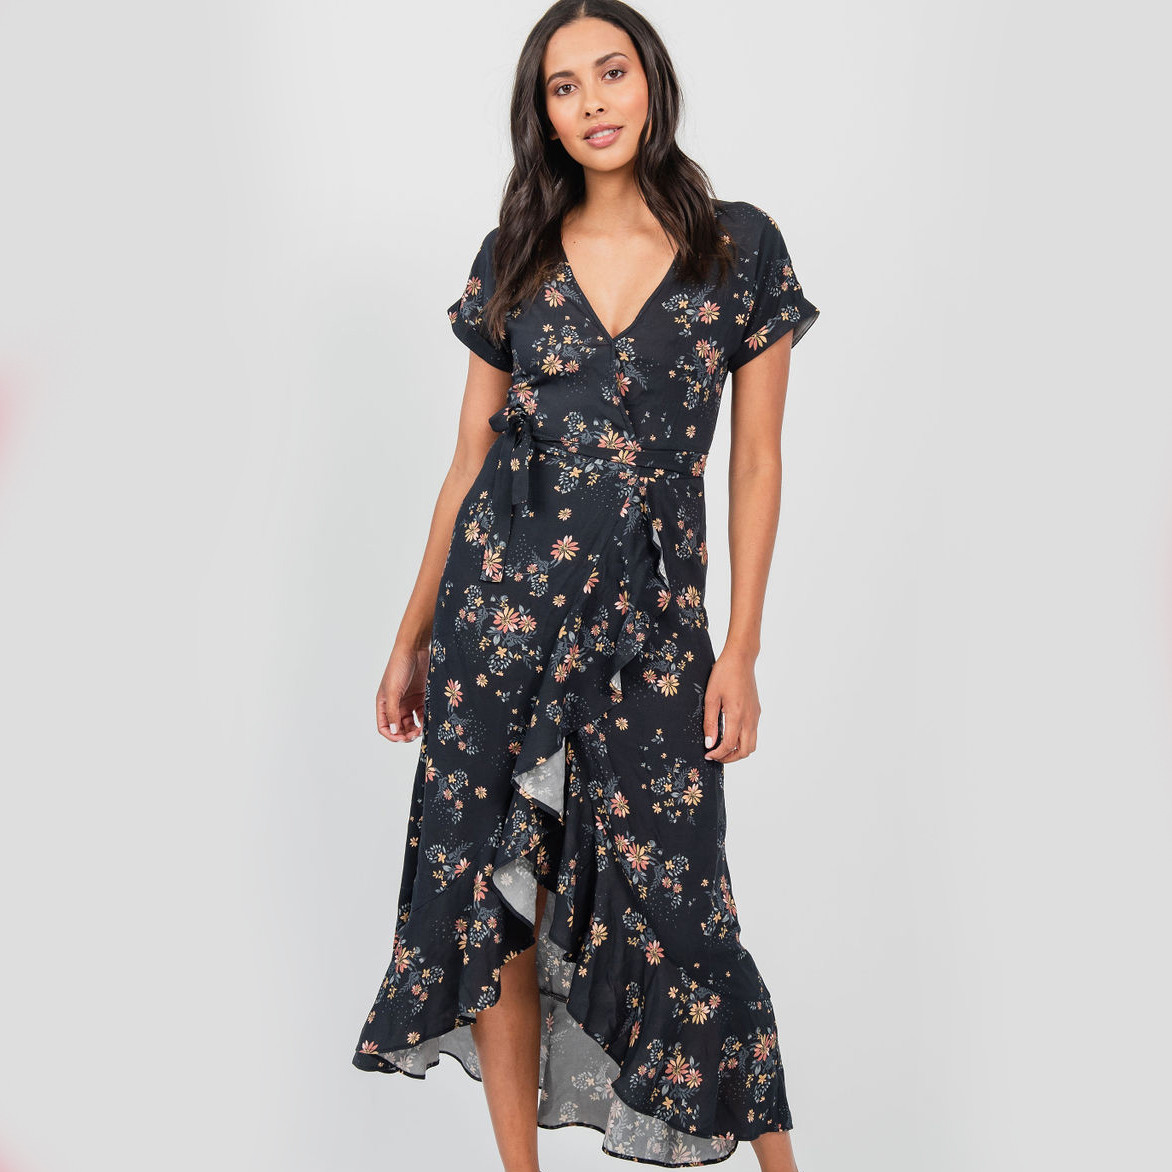 Woman in a Black Floral Wrap Dress - Live and Let Live Casual Summer Dress